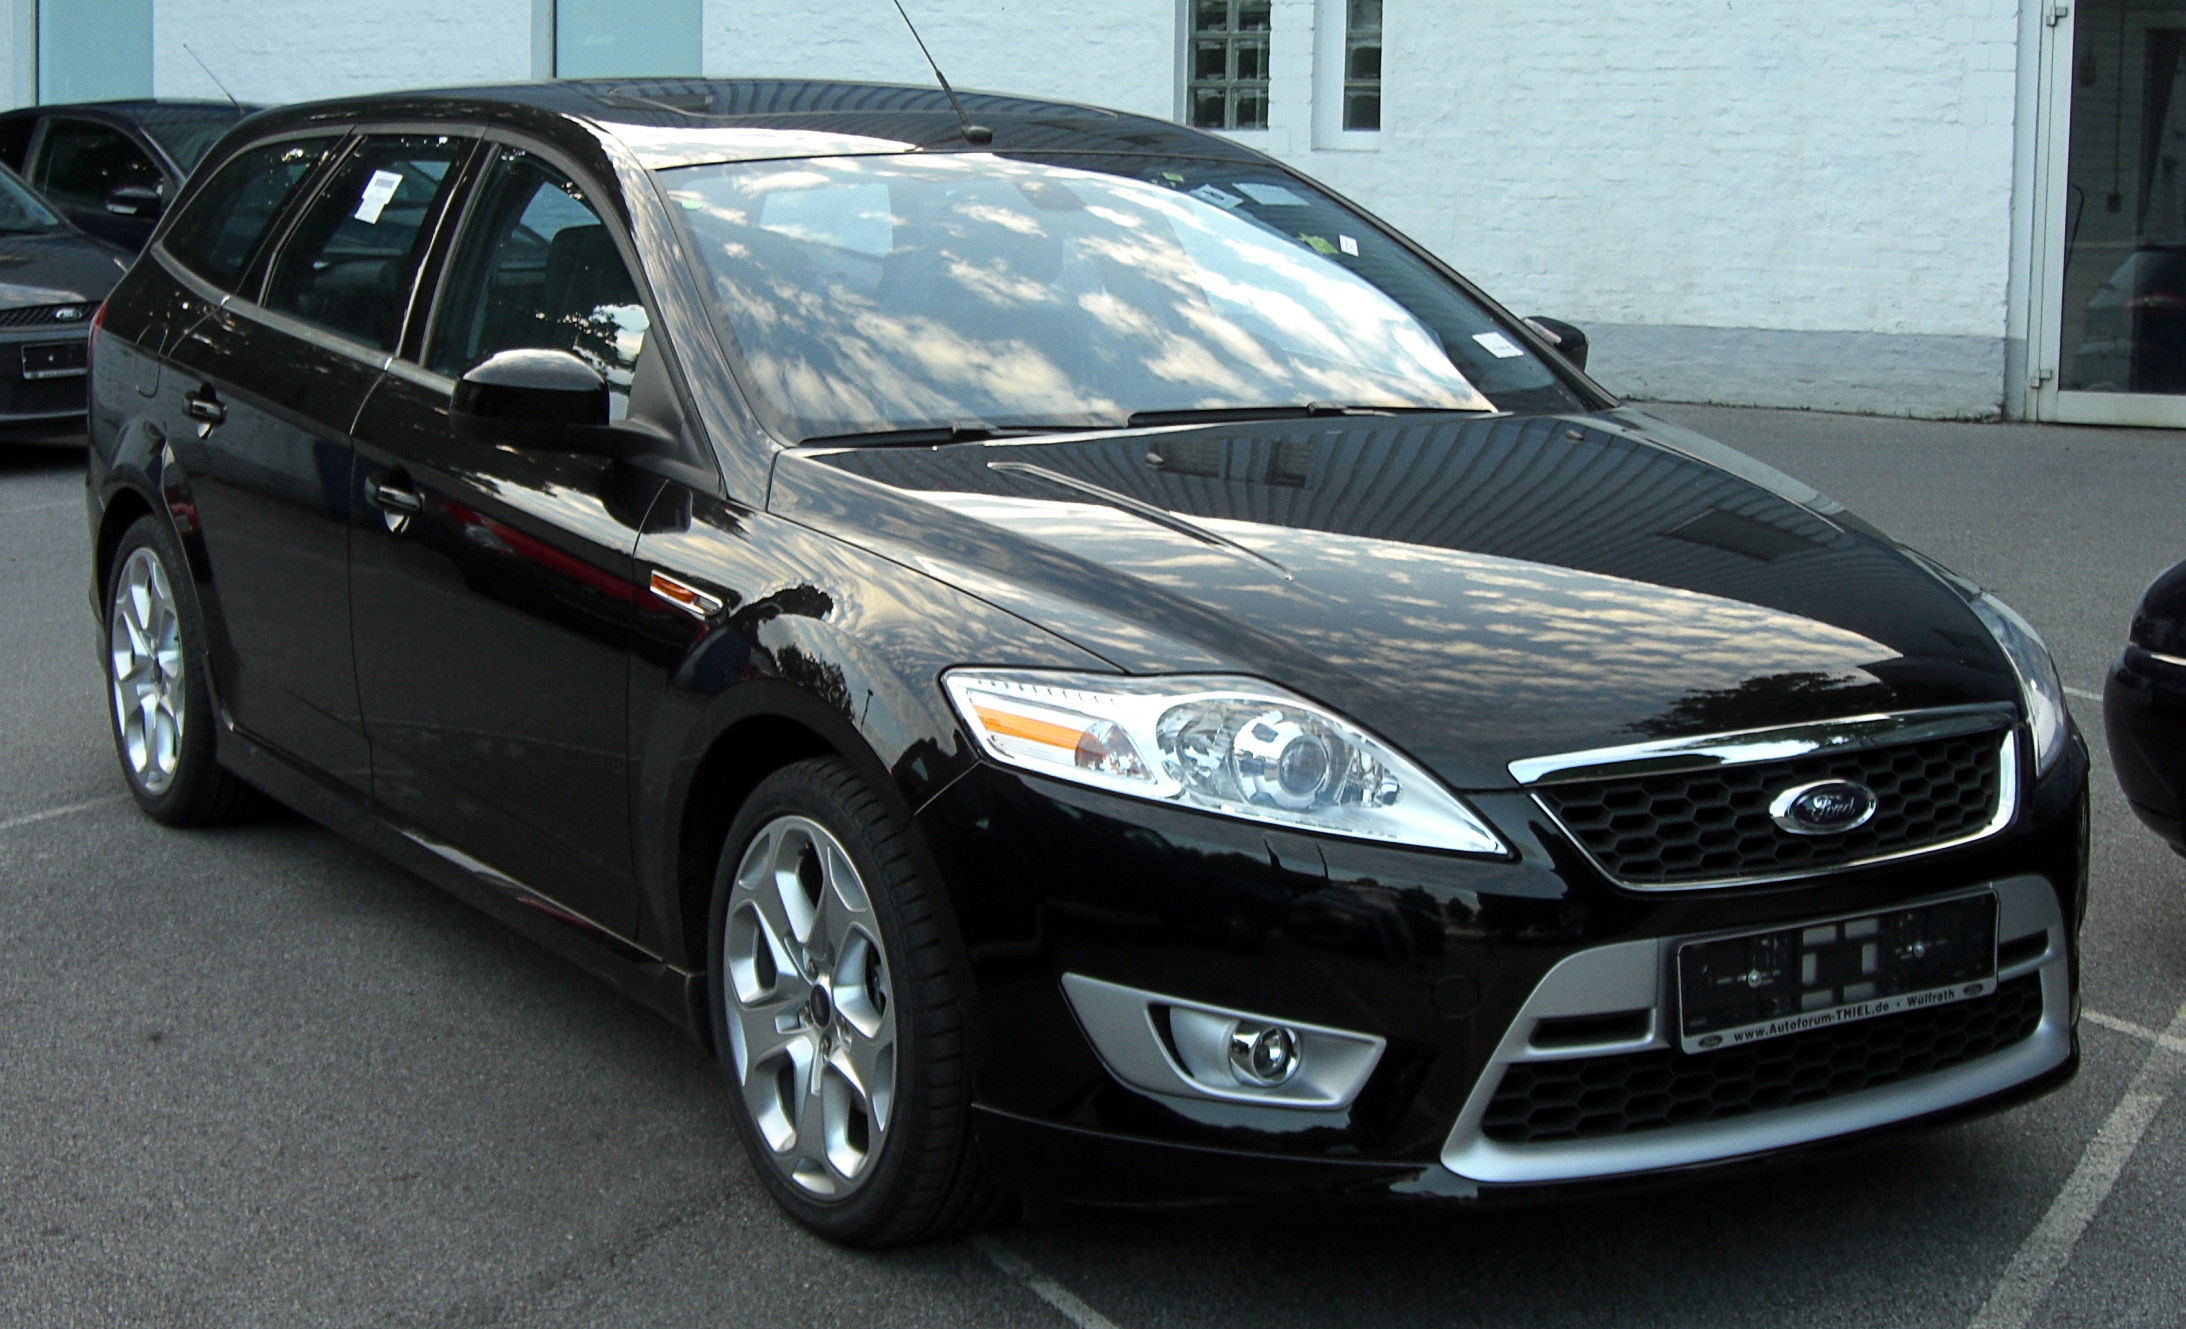 Ford_Mondeo_Turnier_2.5T_front